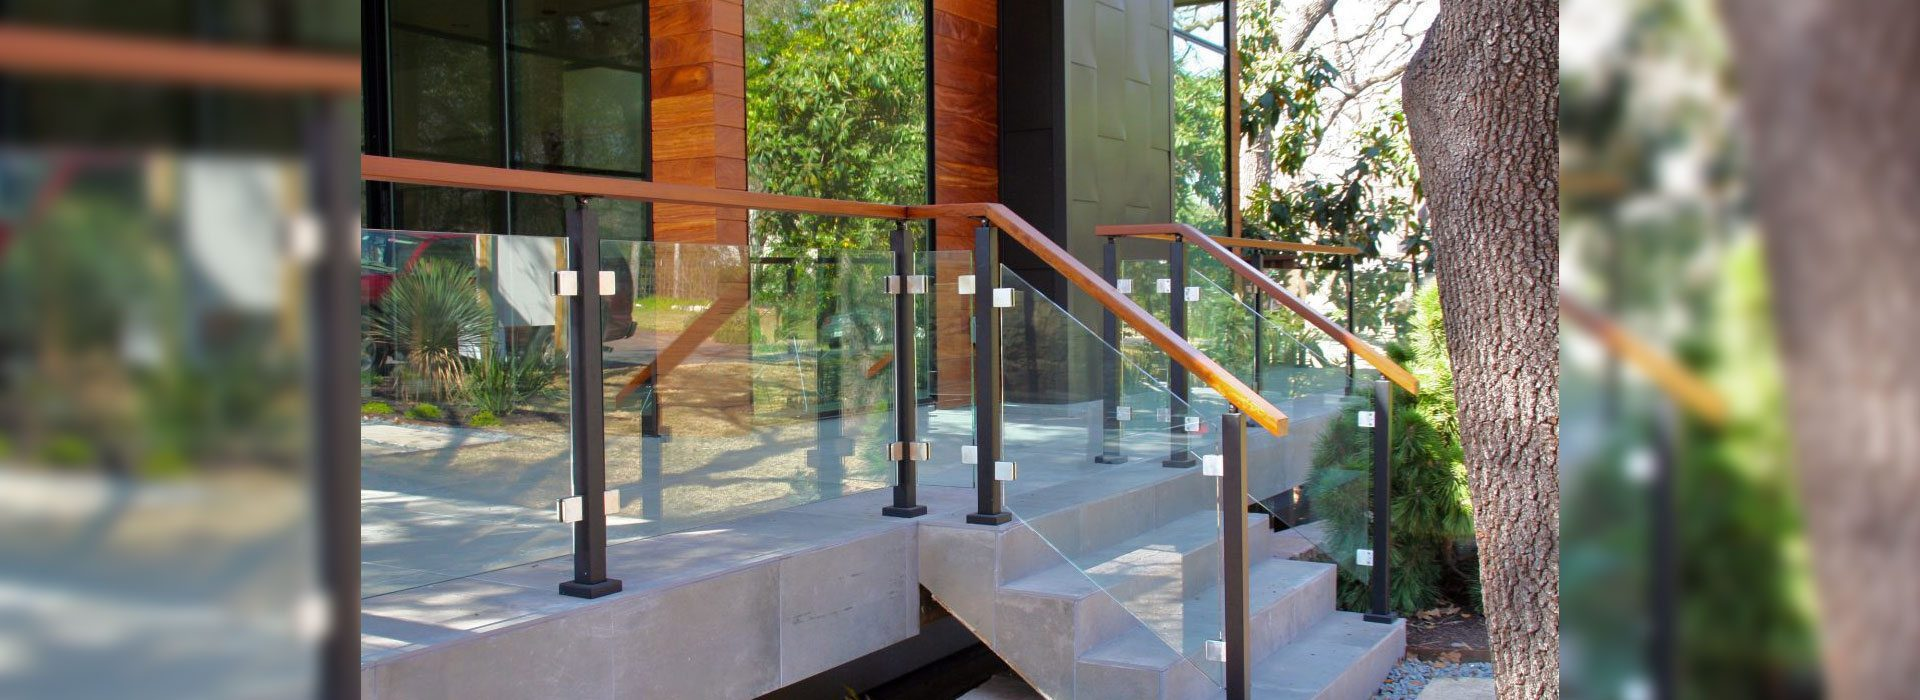 Glass Handrail Systems | Exterior Handrail System | Residential Products U0026  Services | Anchor Ventana